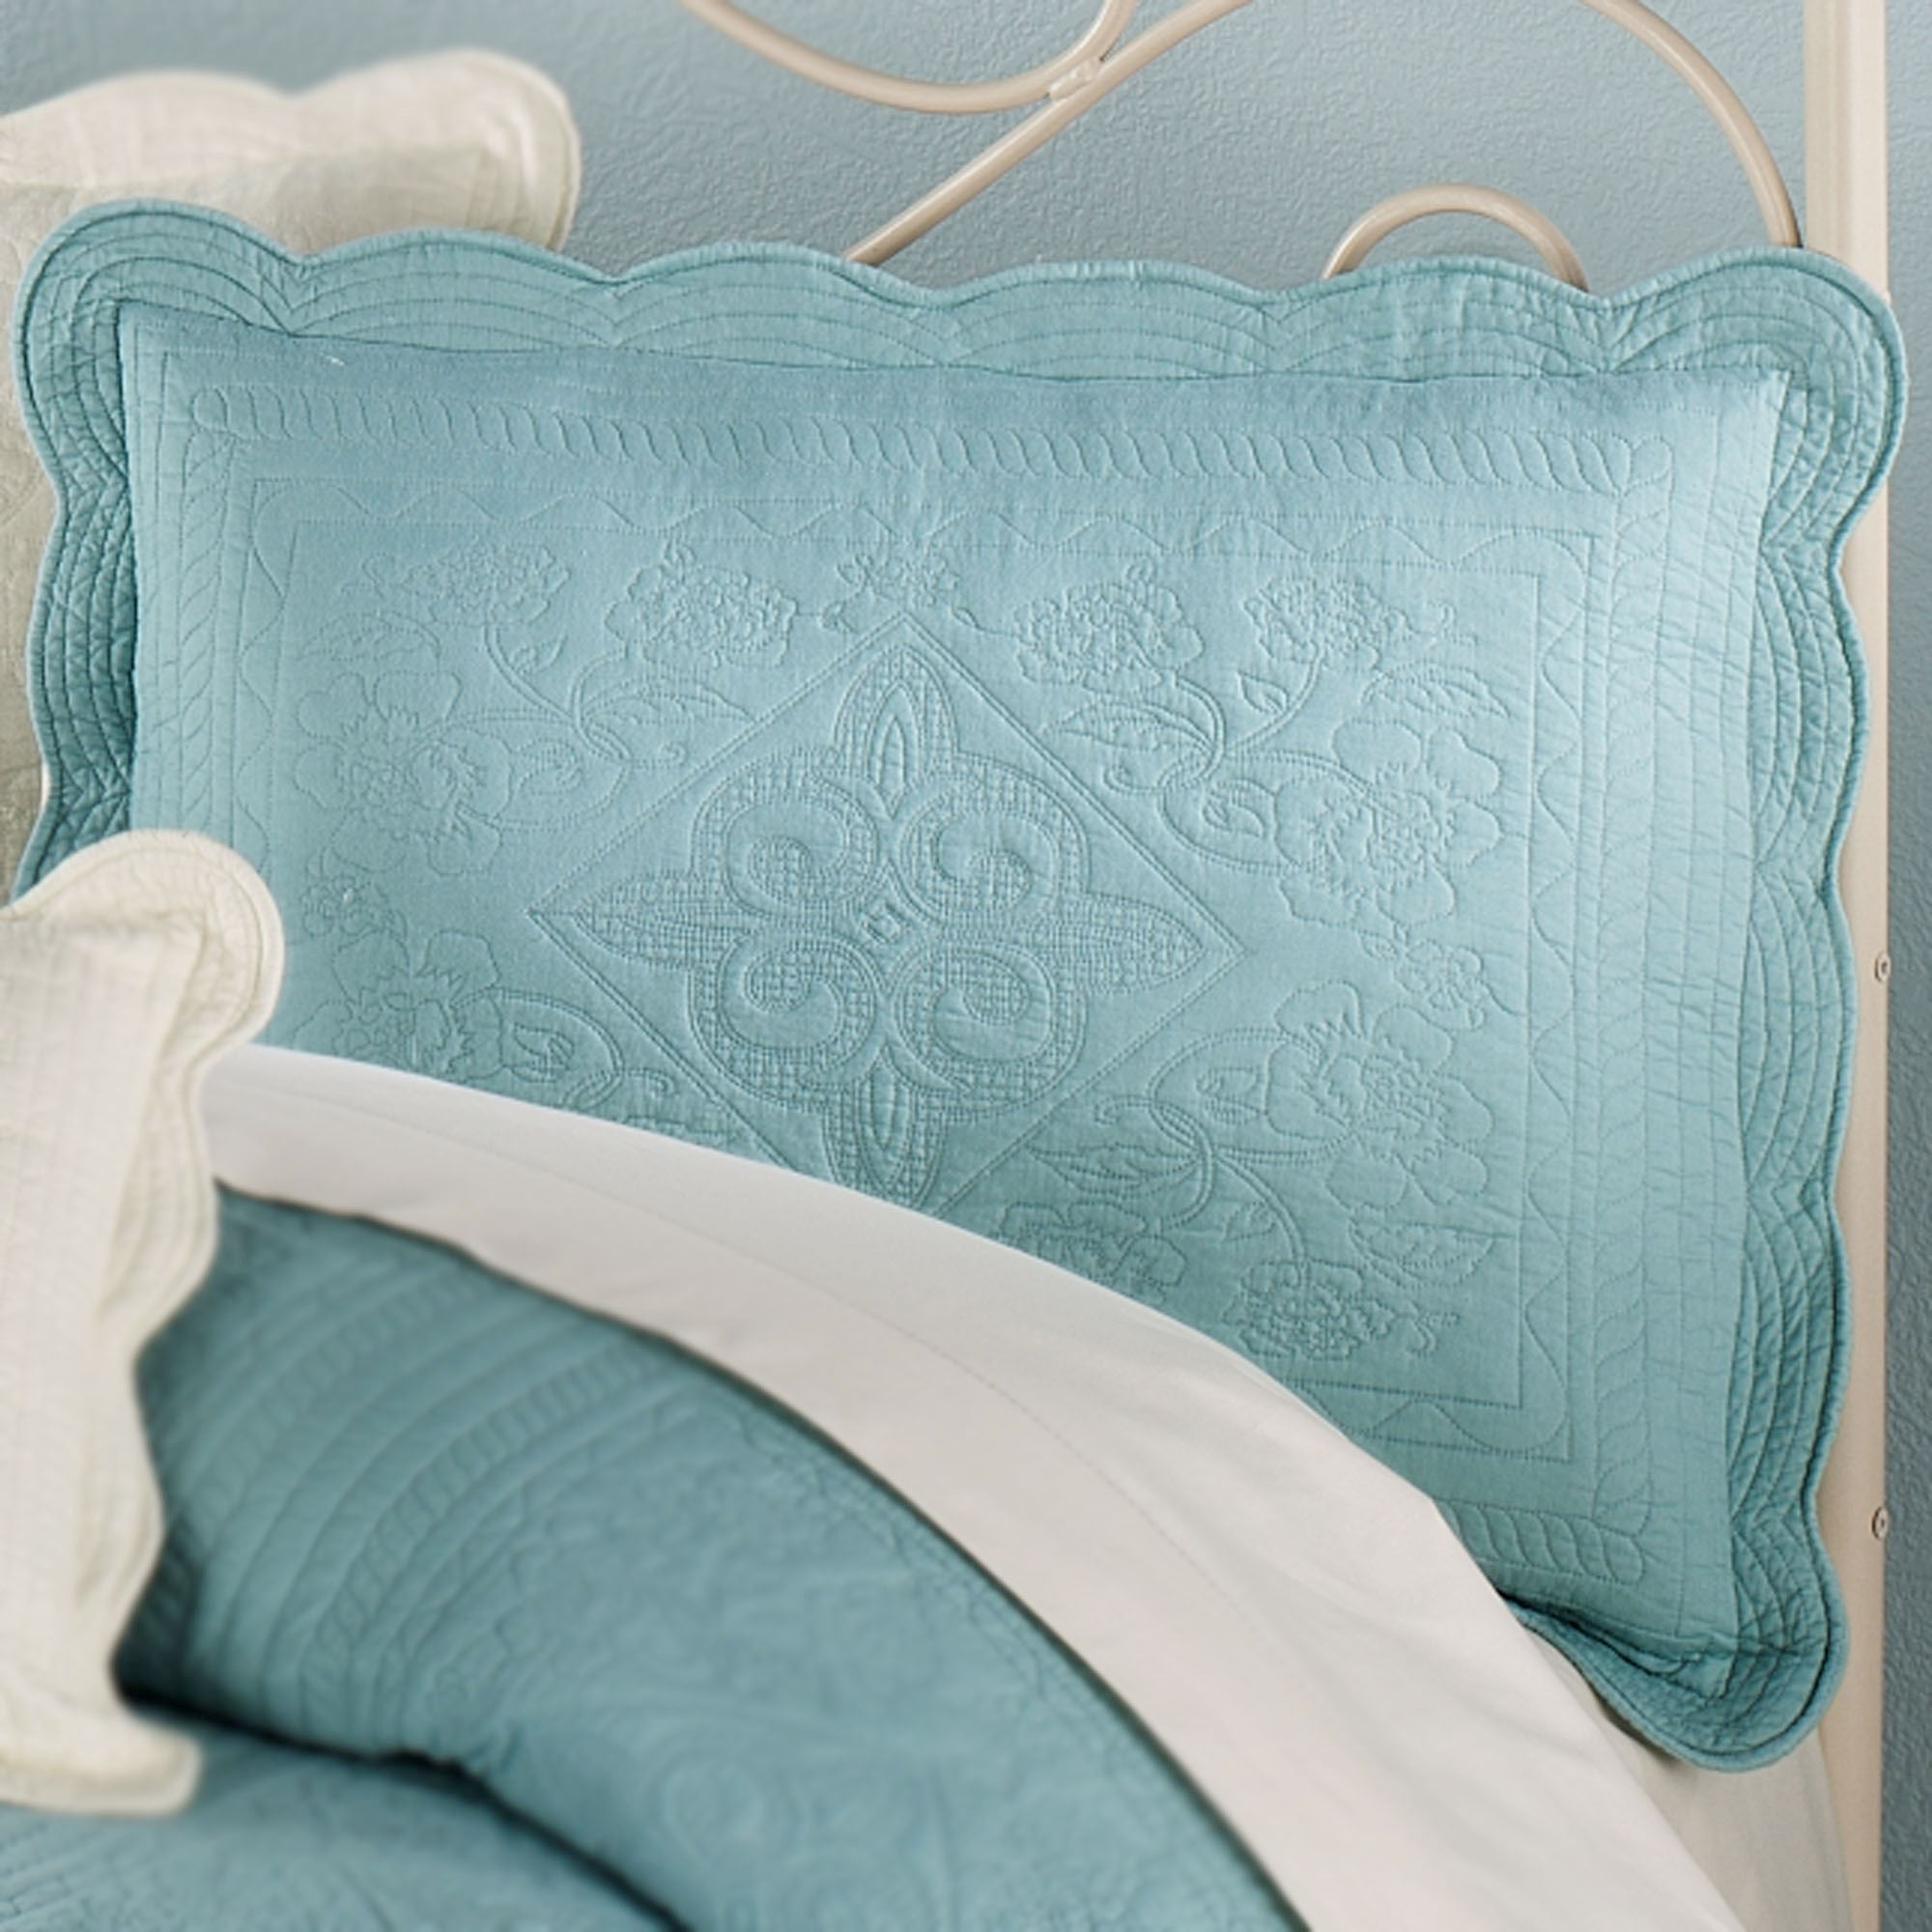 Venice Squares Solid Color Quilt Bedding : teal quilt bedding - Adamdwight.com